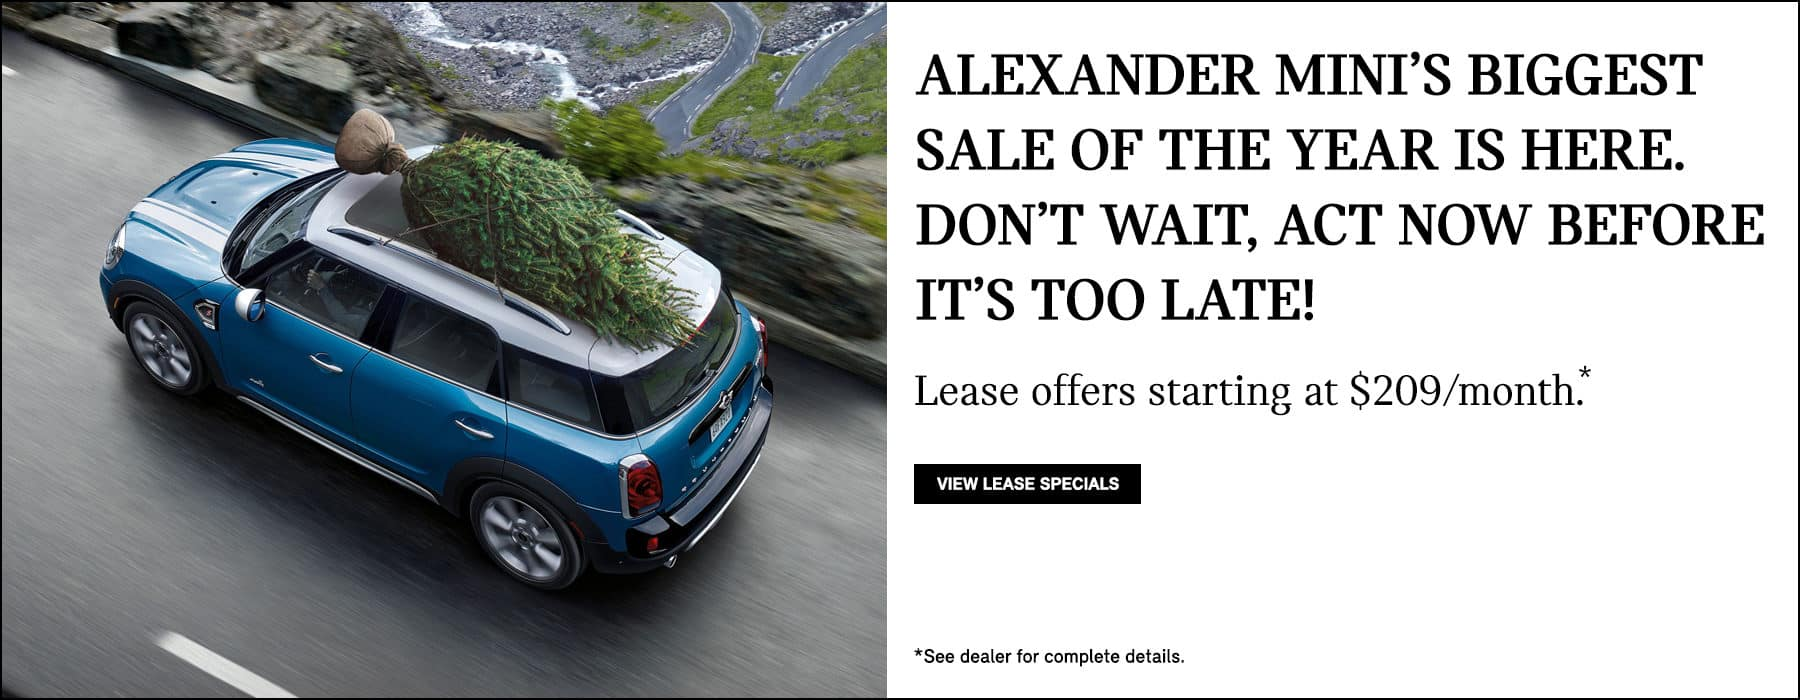 Nick Alexander MINI Cooper Biggest Sale discount lease special price offer of the year Los Angeles So Cal California SoCal Santa Monica Hollywood West Universal City Valley Orange County Ventura Inland Empire West Side Westside Beverly Hills Sherman Oaks Thousand Oaks Calabasas Irvine Monrovia San Diego